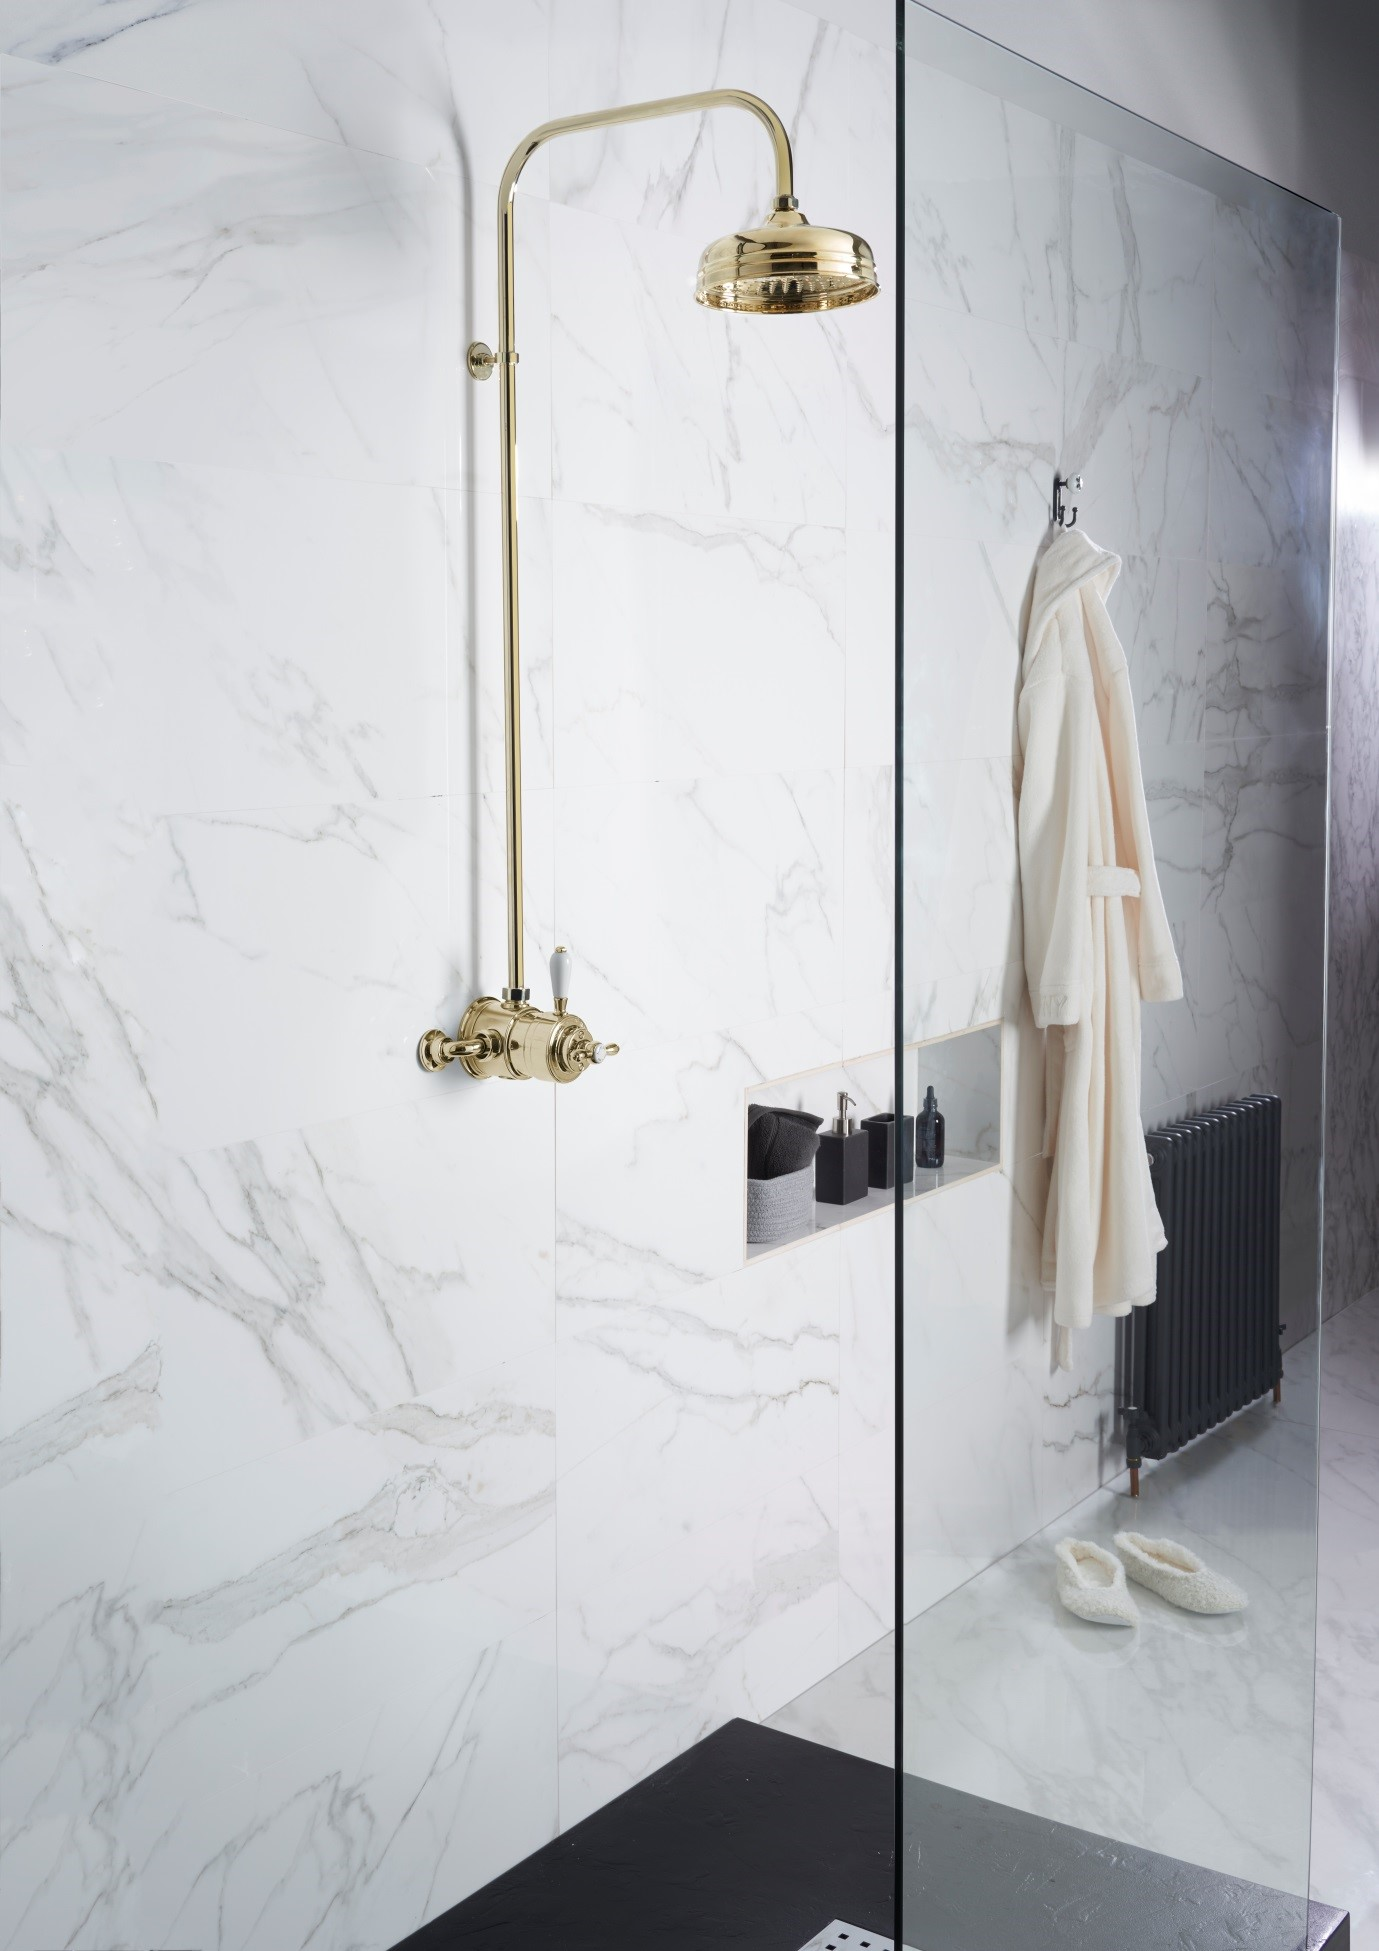 Aqualisa Aquatique showering brassware available from BATHLINE bathrooms.